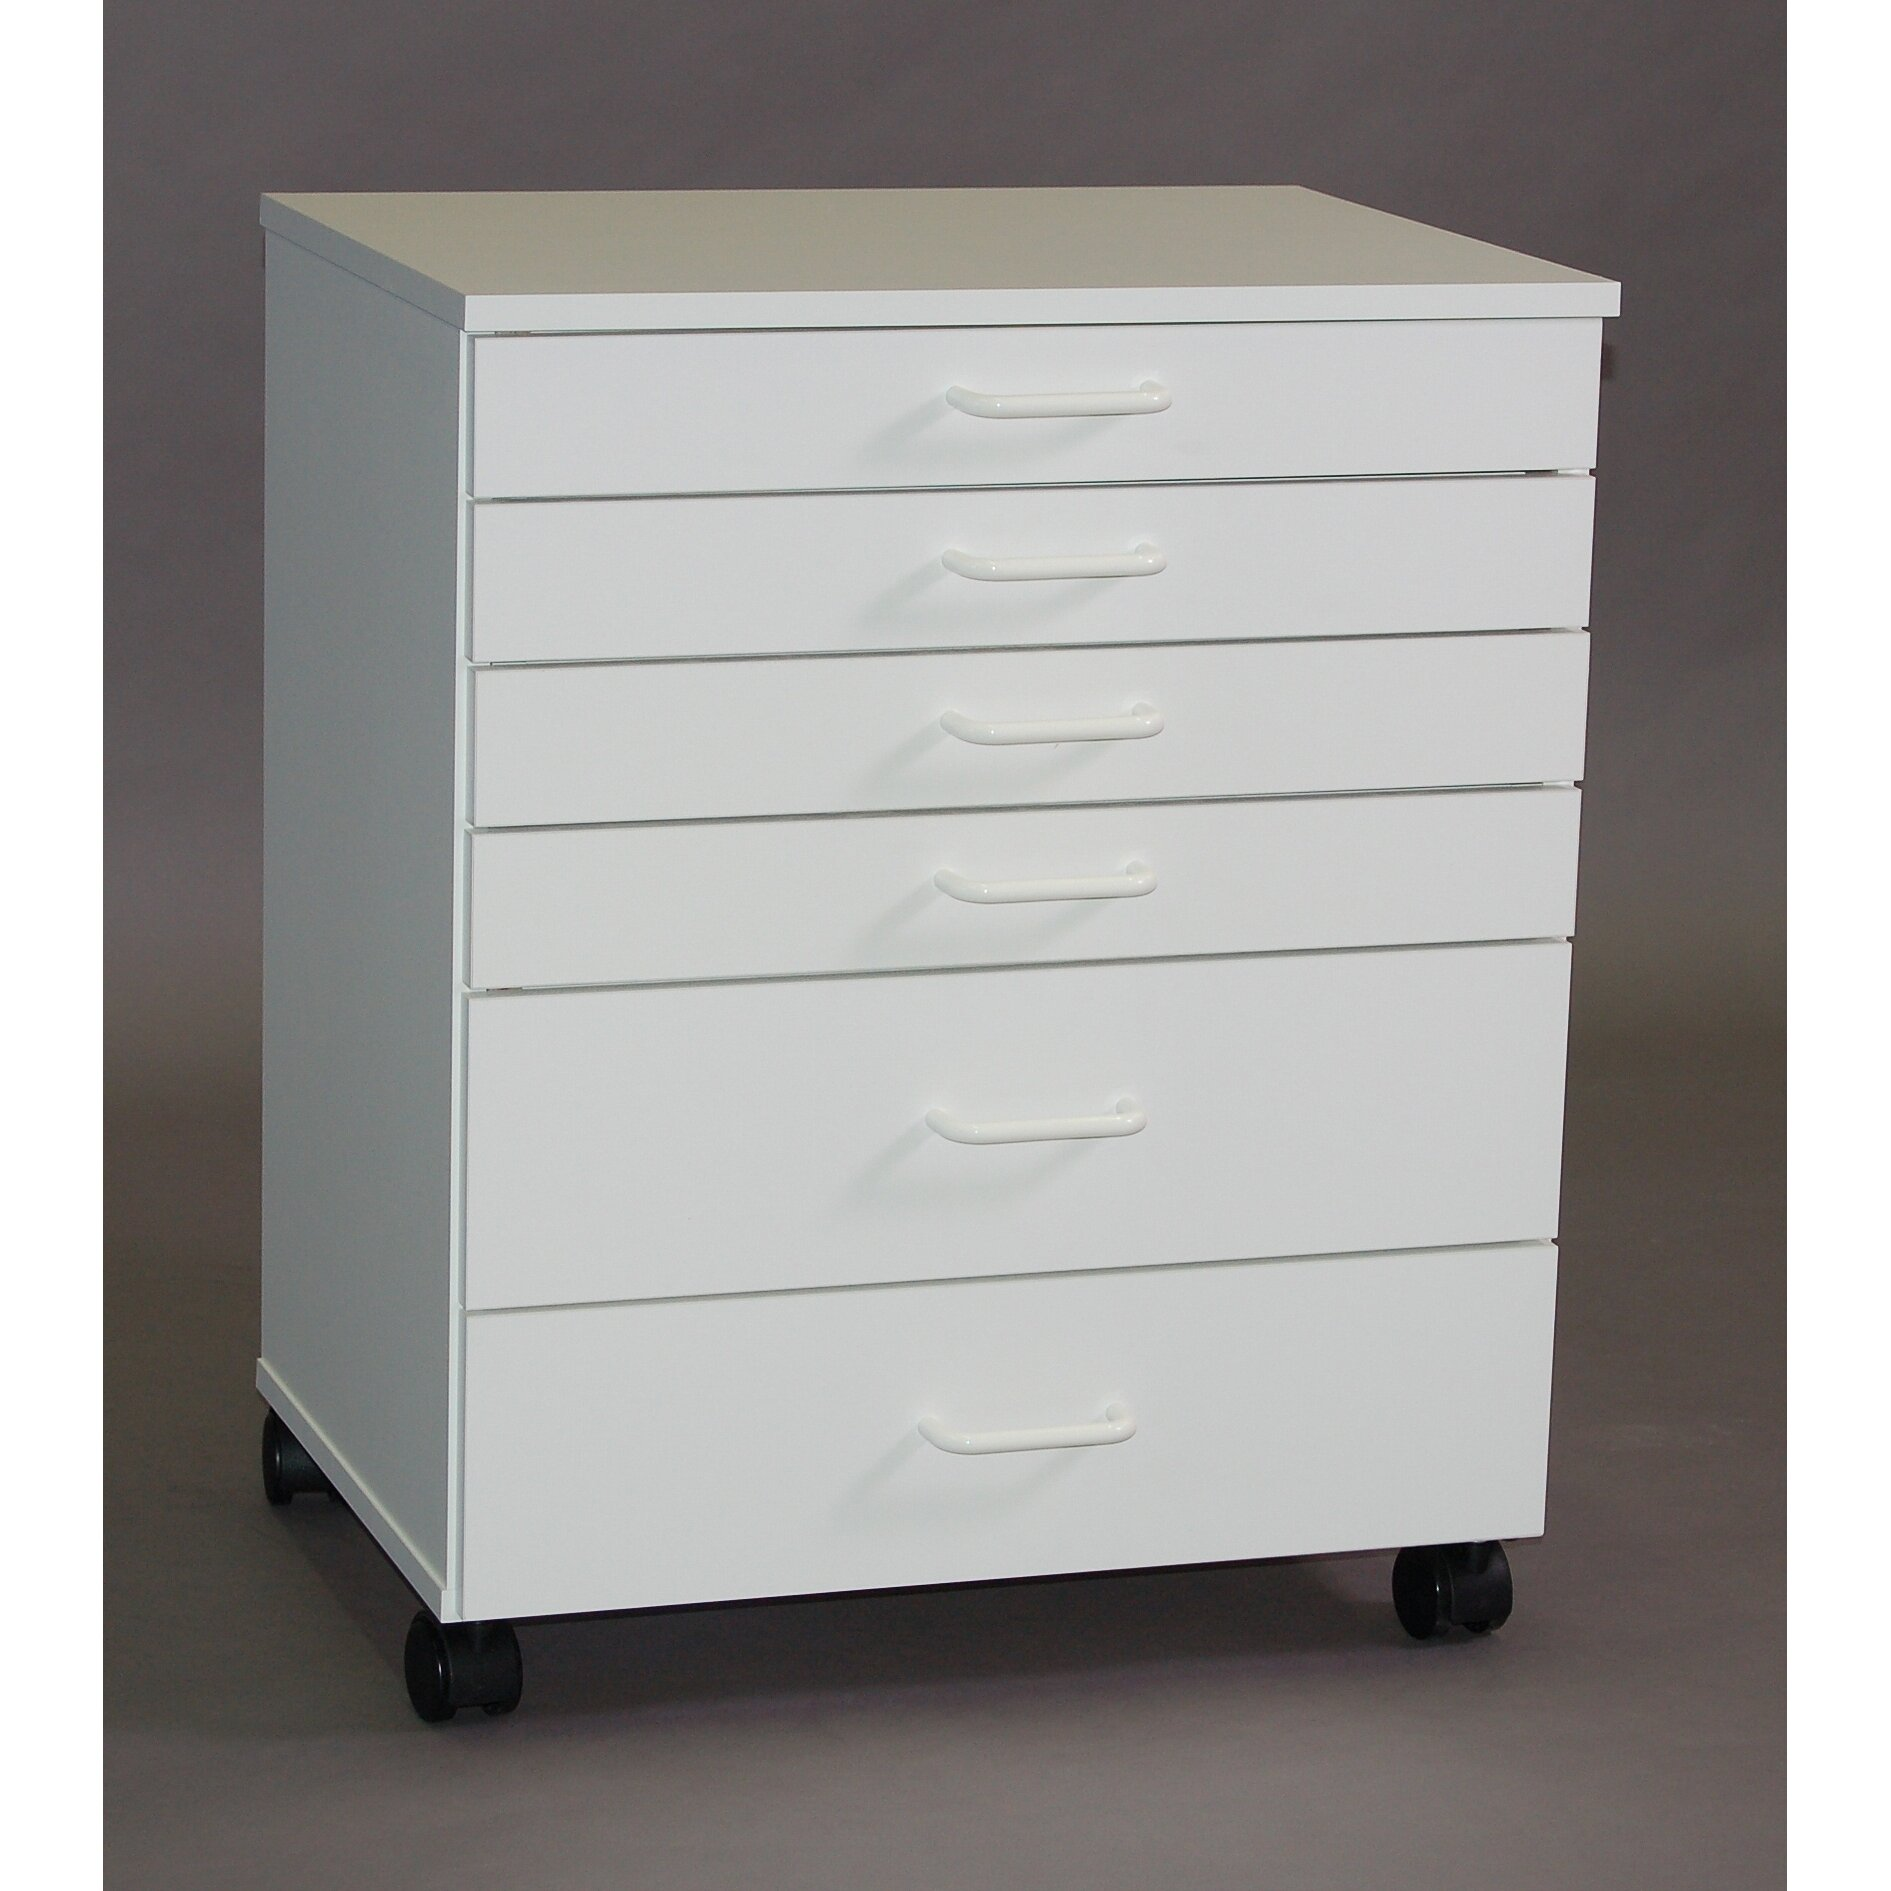 6 Drawer Lateral File Cabinet Smiproducts Vanguard 6 Drawer Lateral File Reviews Wayfair